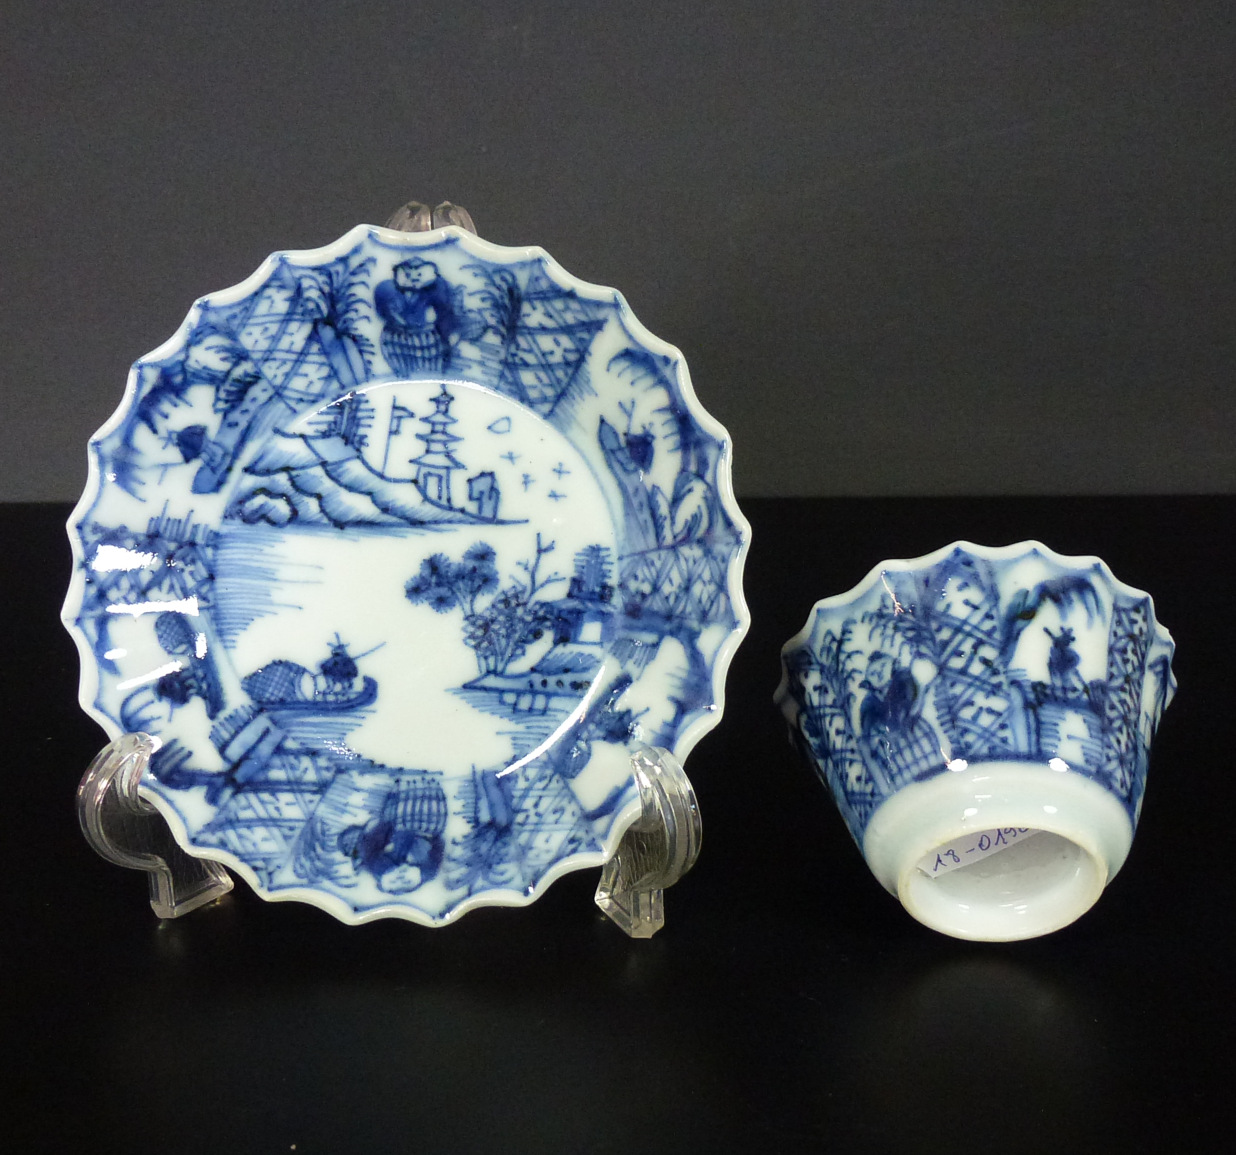 17th C. Transitional Cup & Saucer